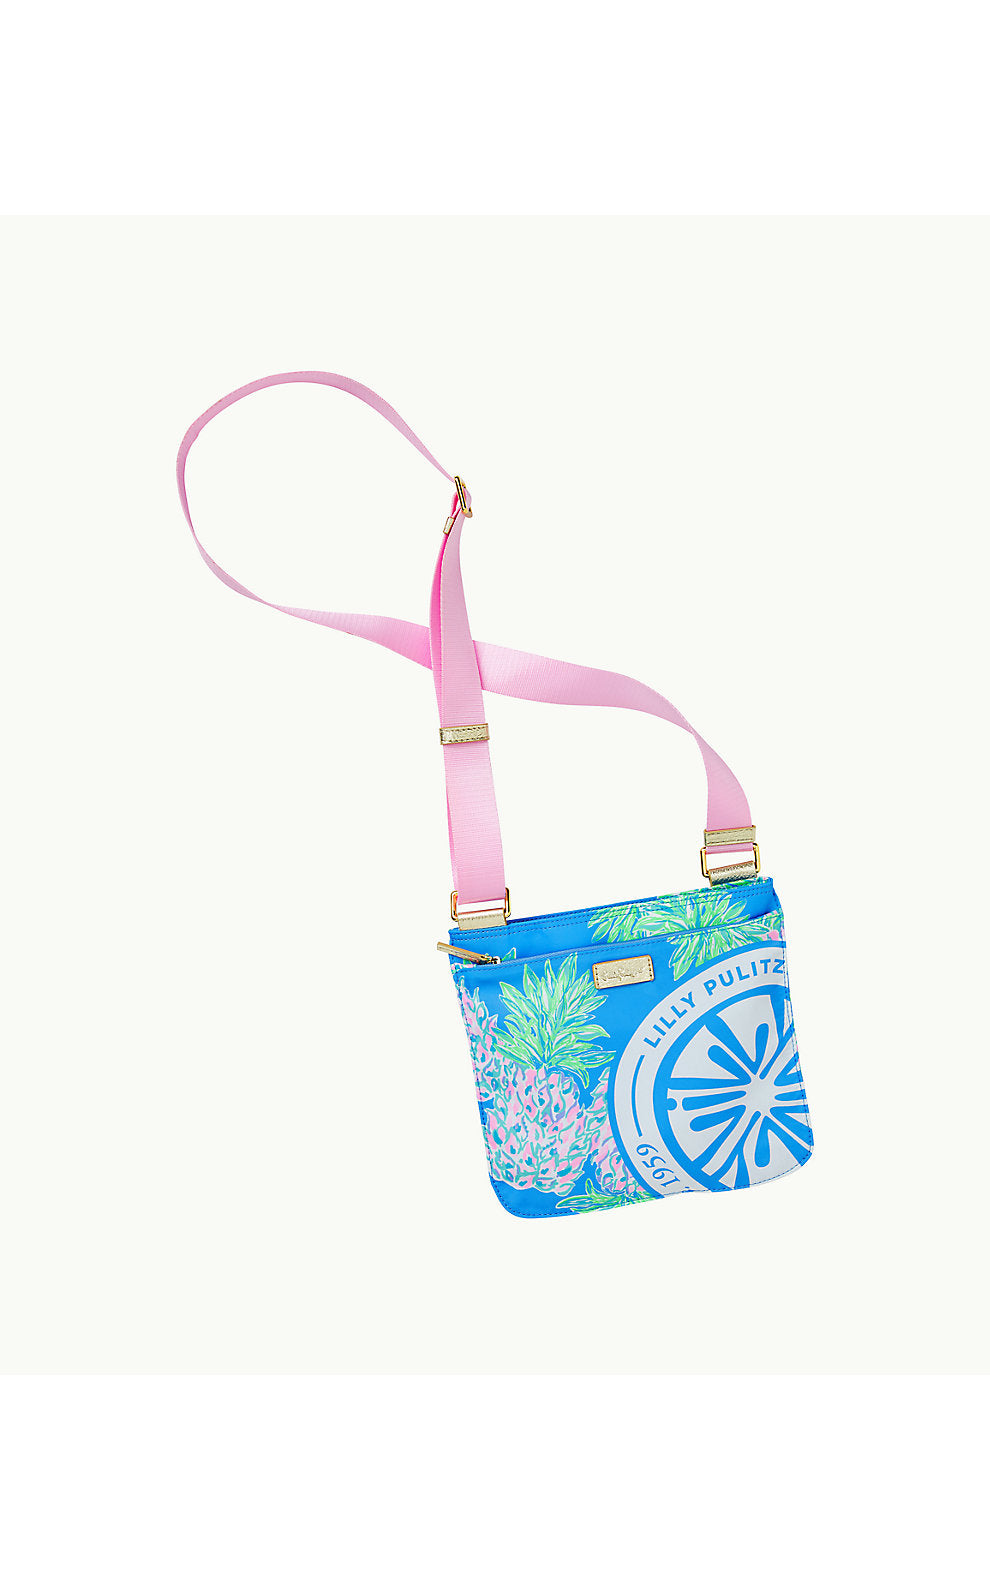 Pompano Crossbody Zanzibar Blue       Swizzle Out Engineer